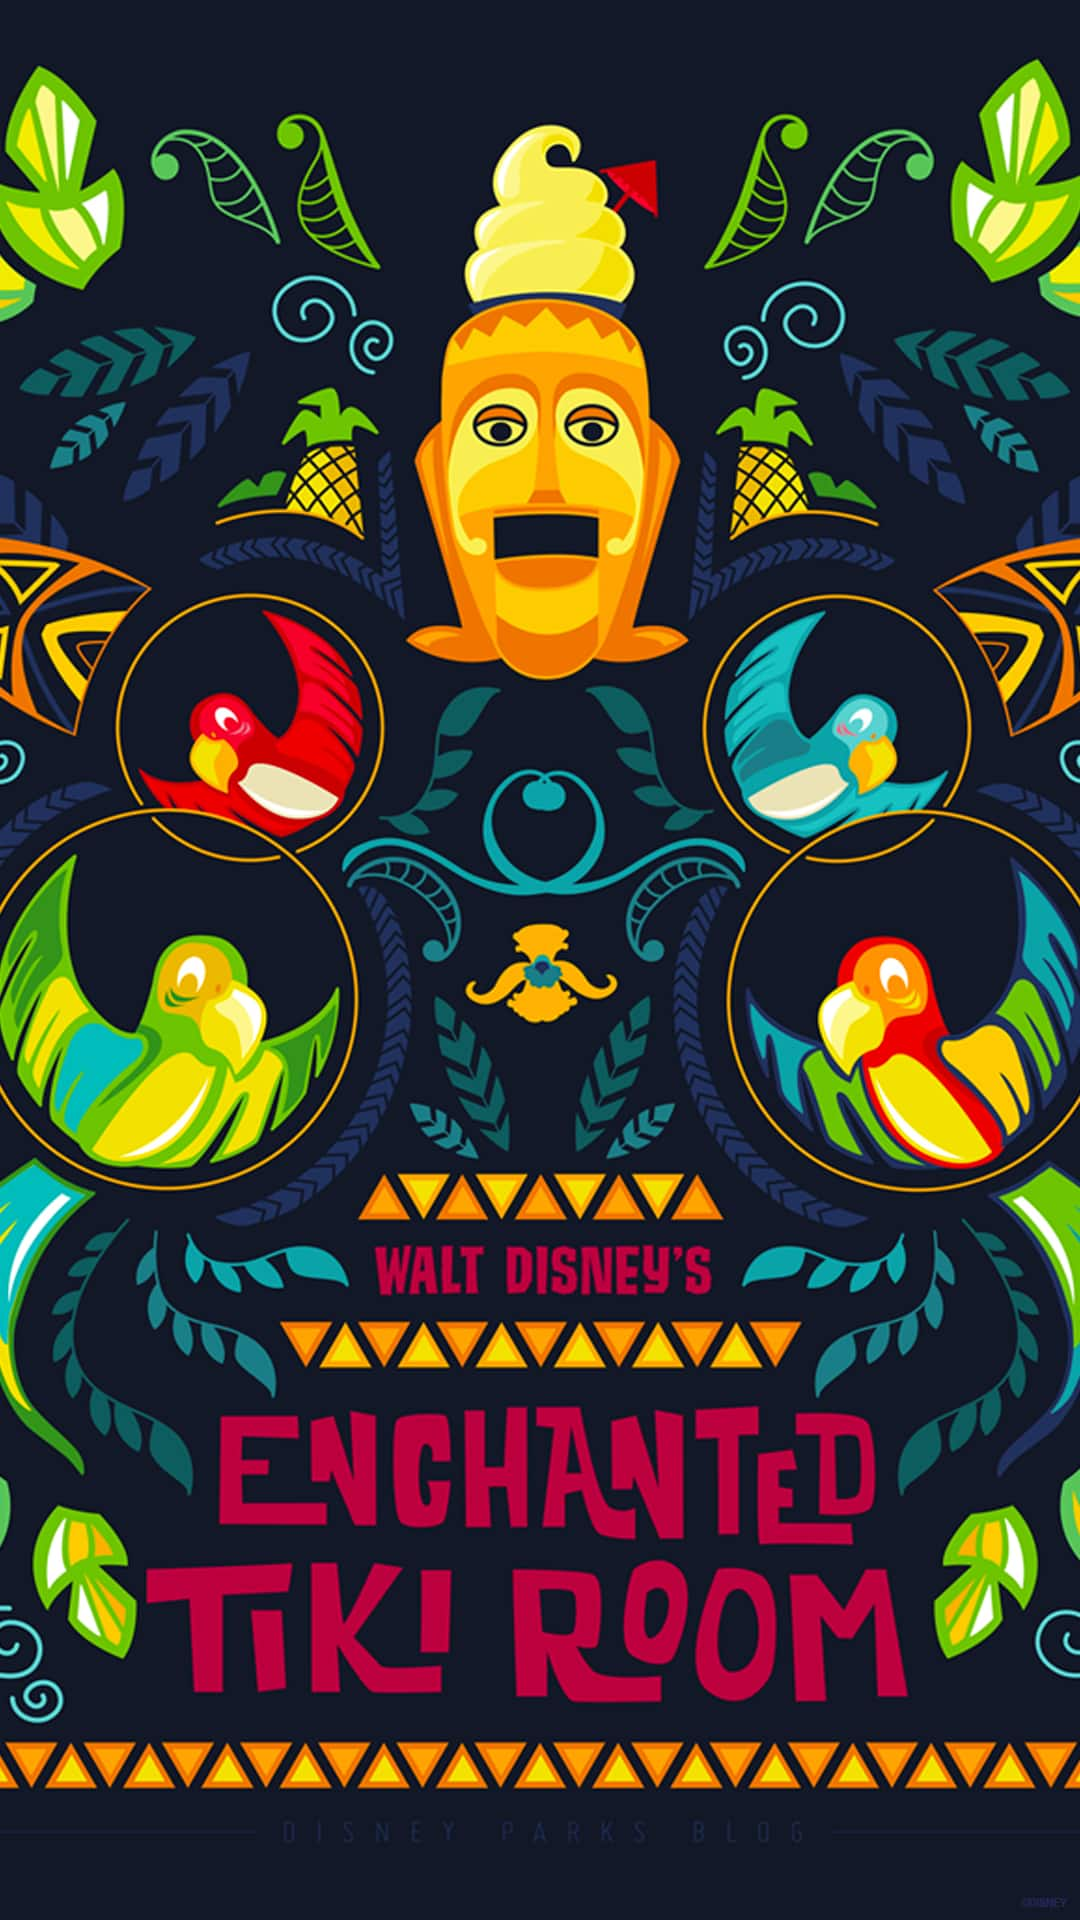 45th Anniversary Wallpaper Walt Disney S Enchanted Tiki Room Mobile Disney Parks Blog